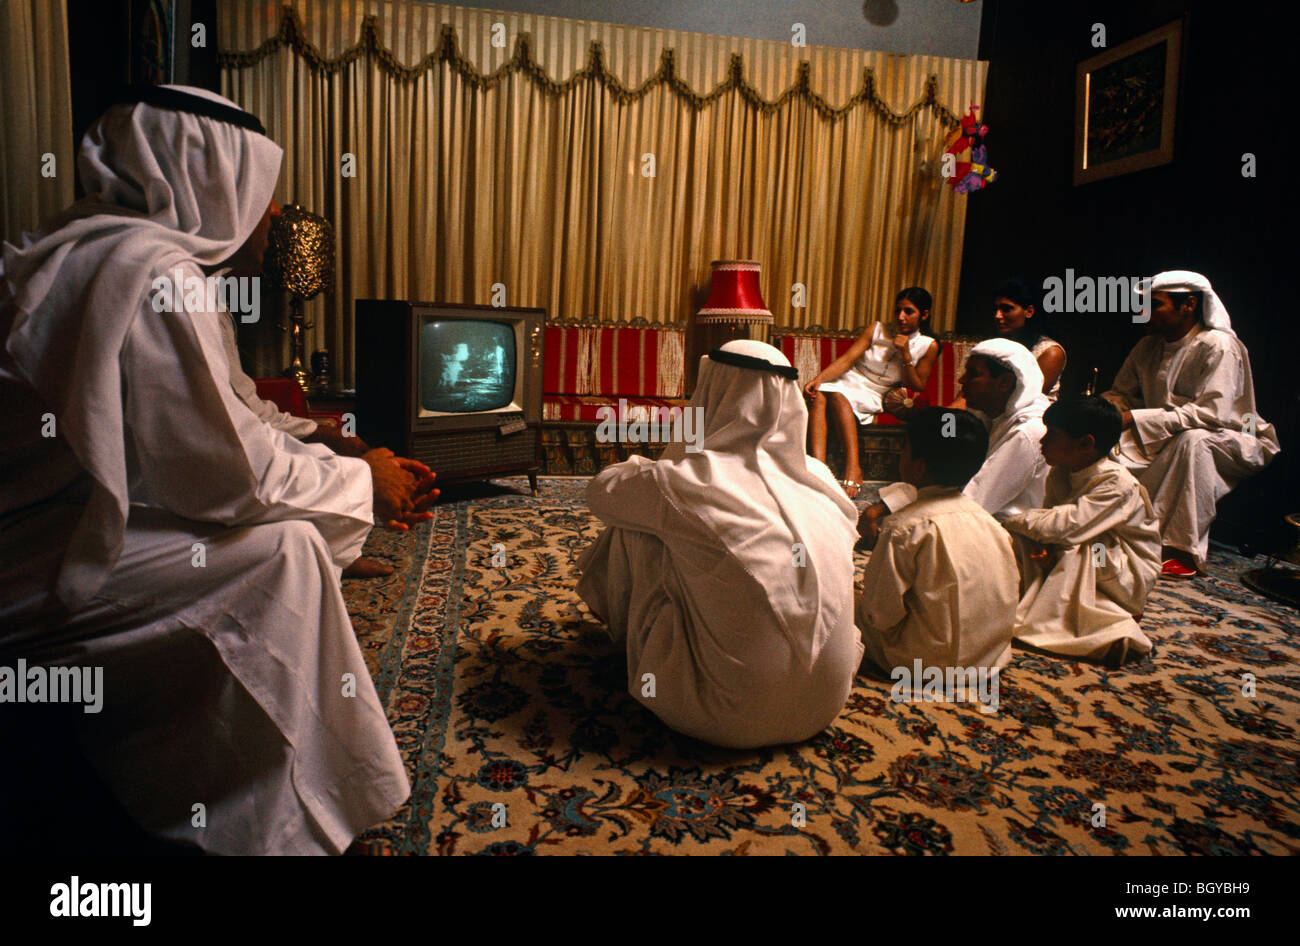 July 20, 1969.  Apollo landing of a man on the moon viewed on television by a family in Kuwait.  Arab men and women - Stock Image